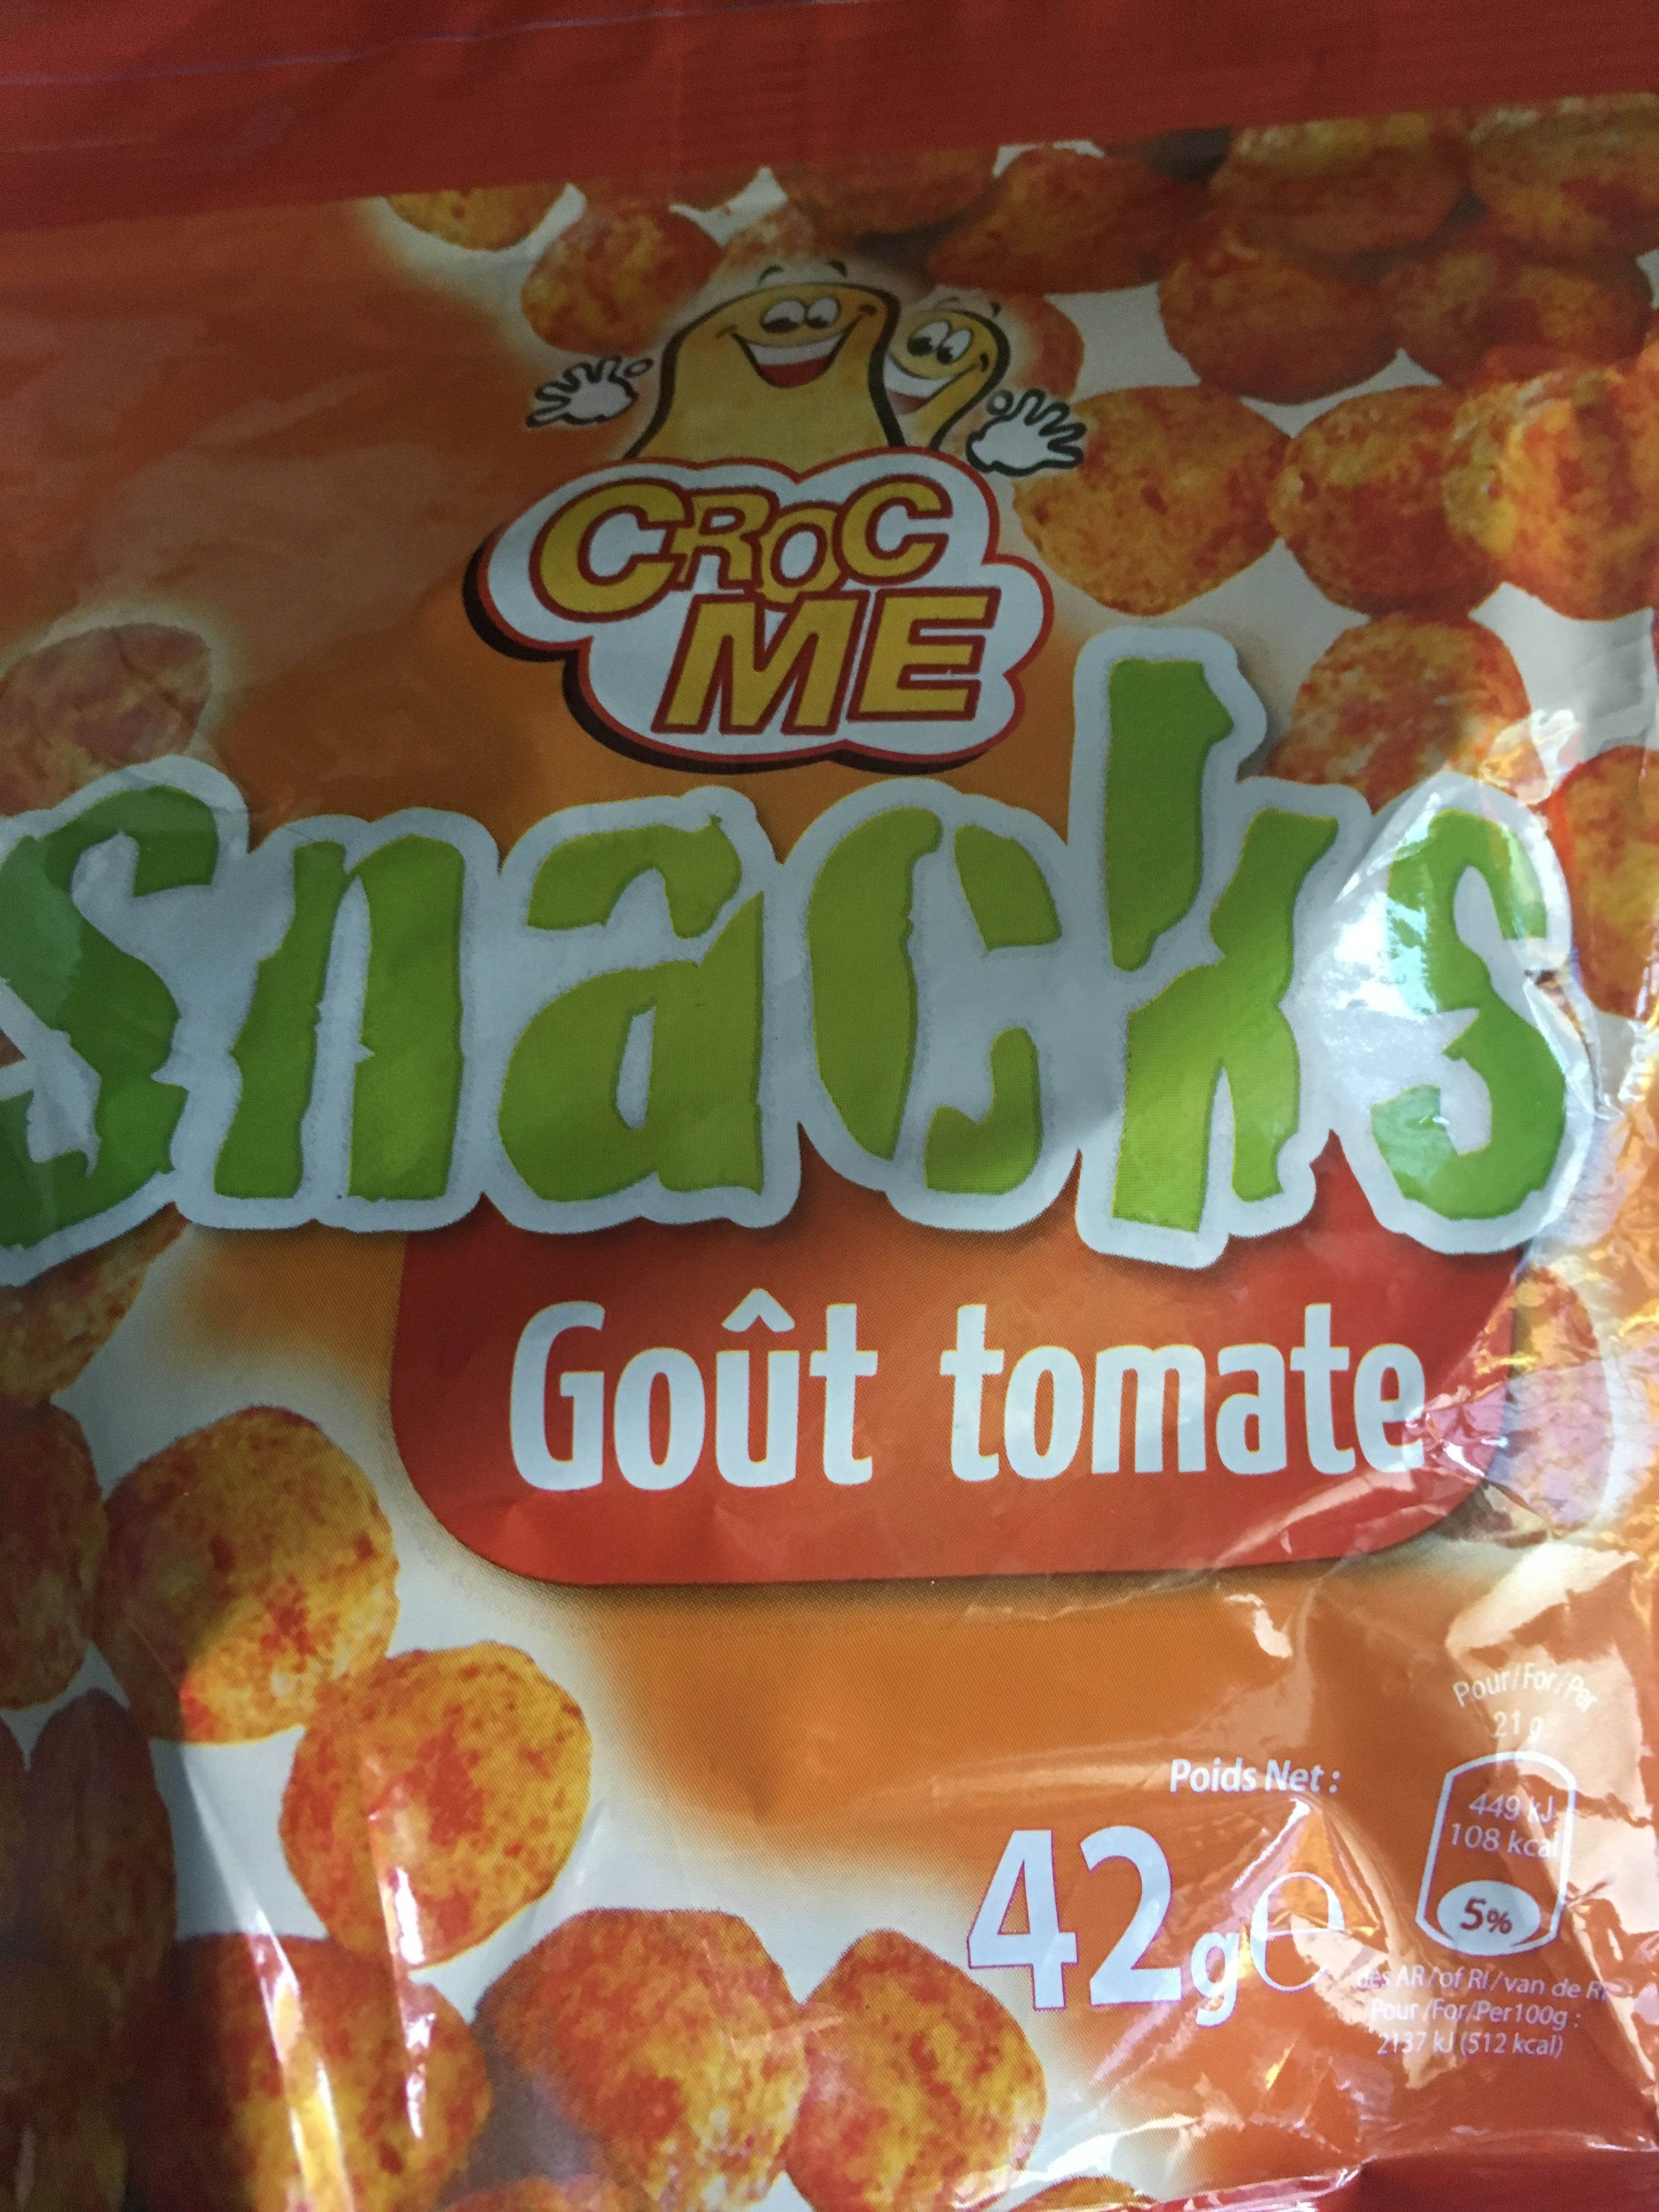 Boules tomate - Product